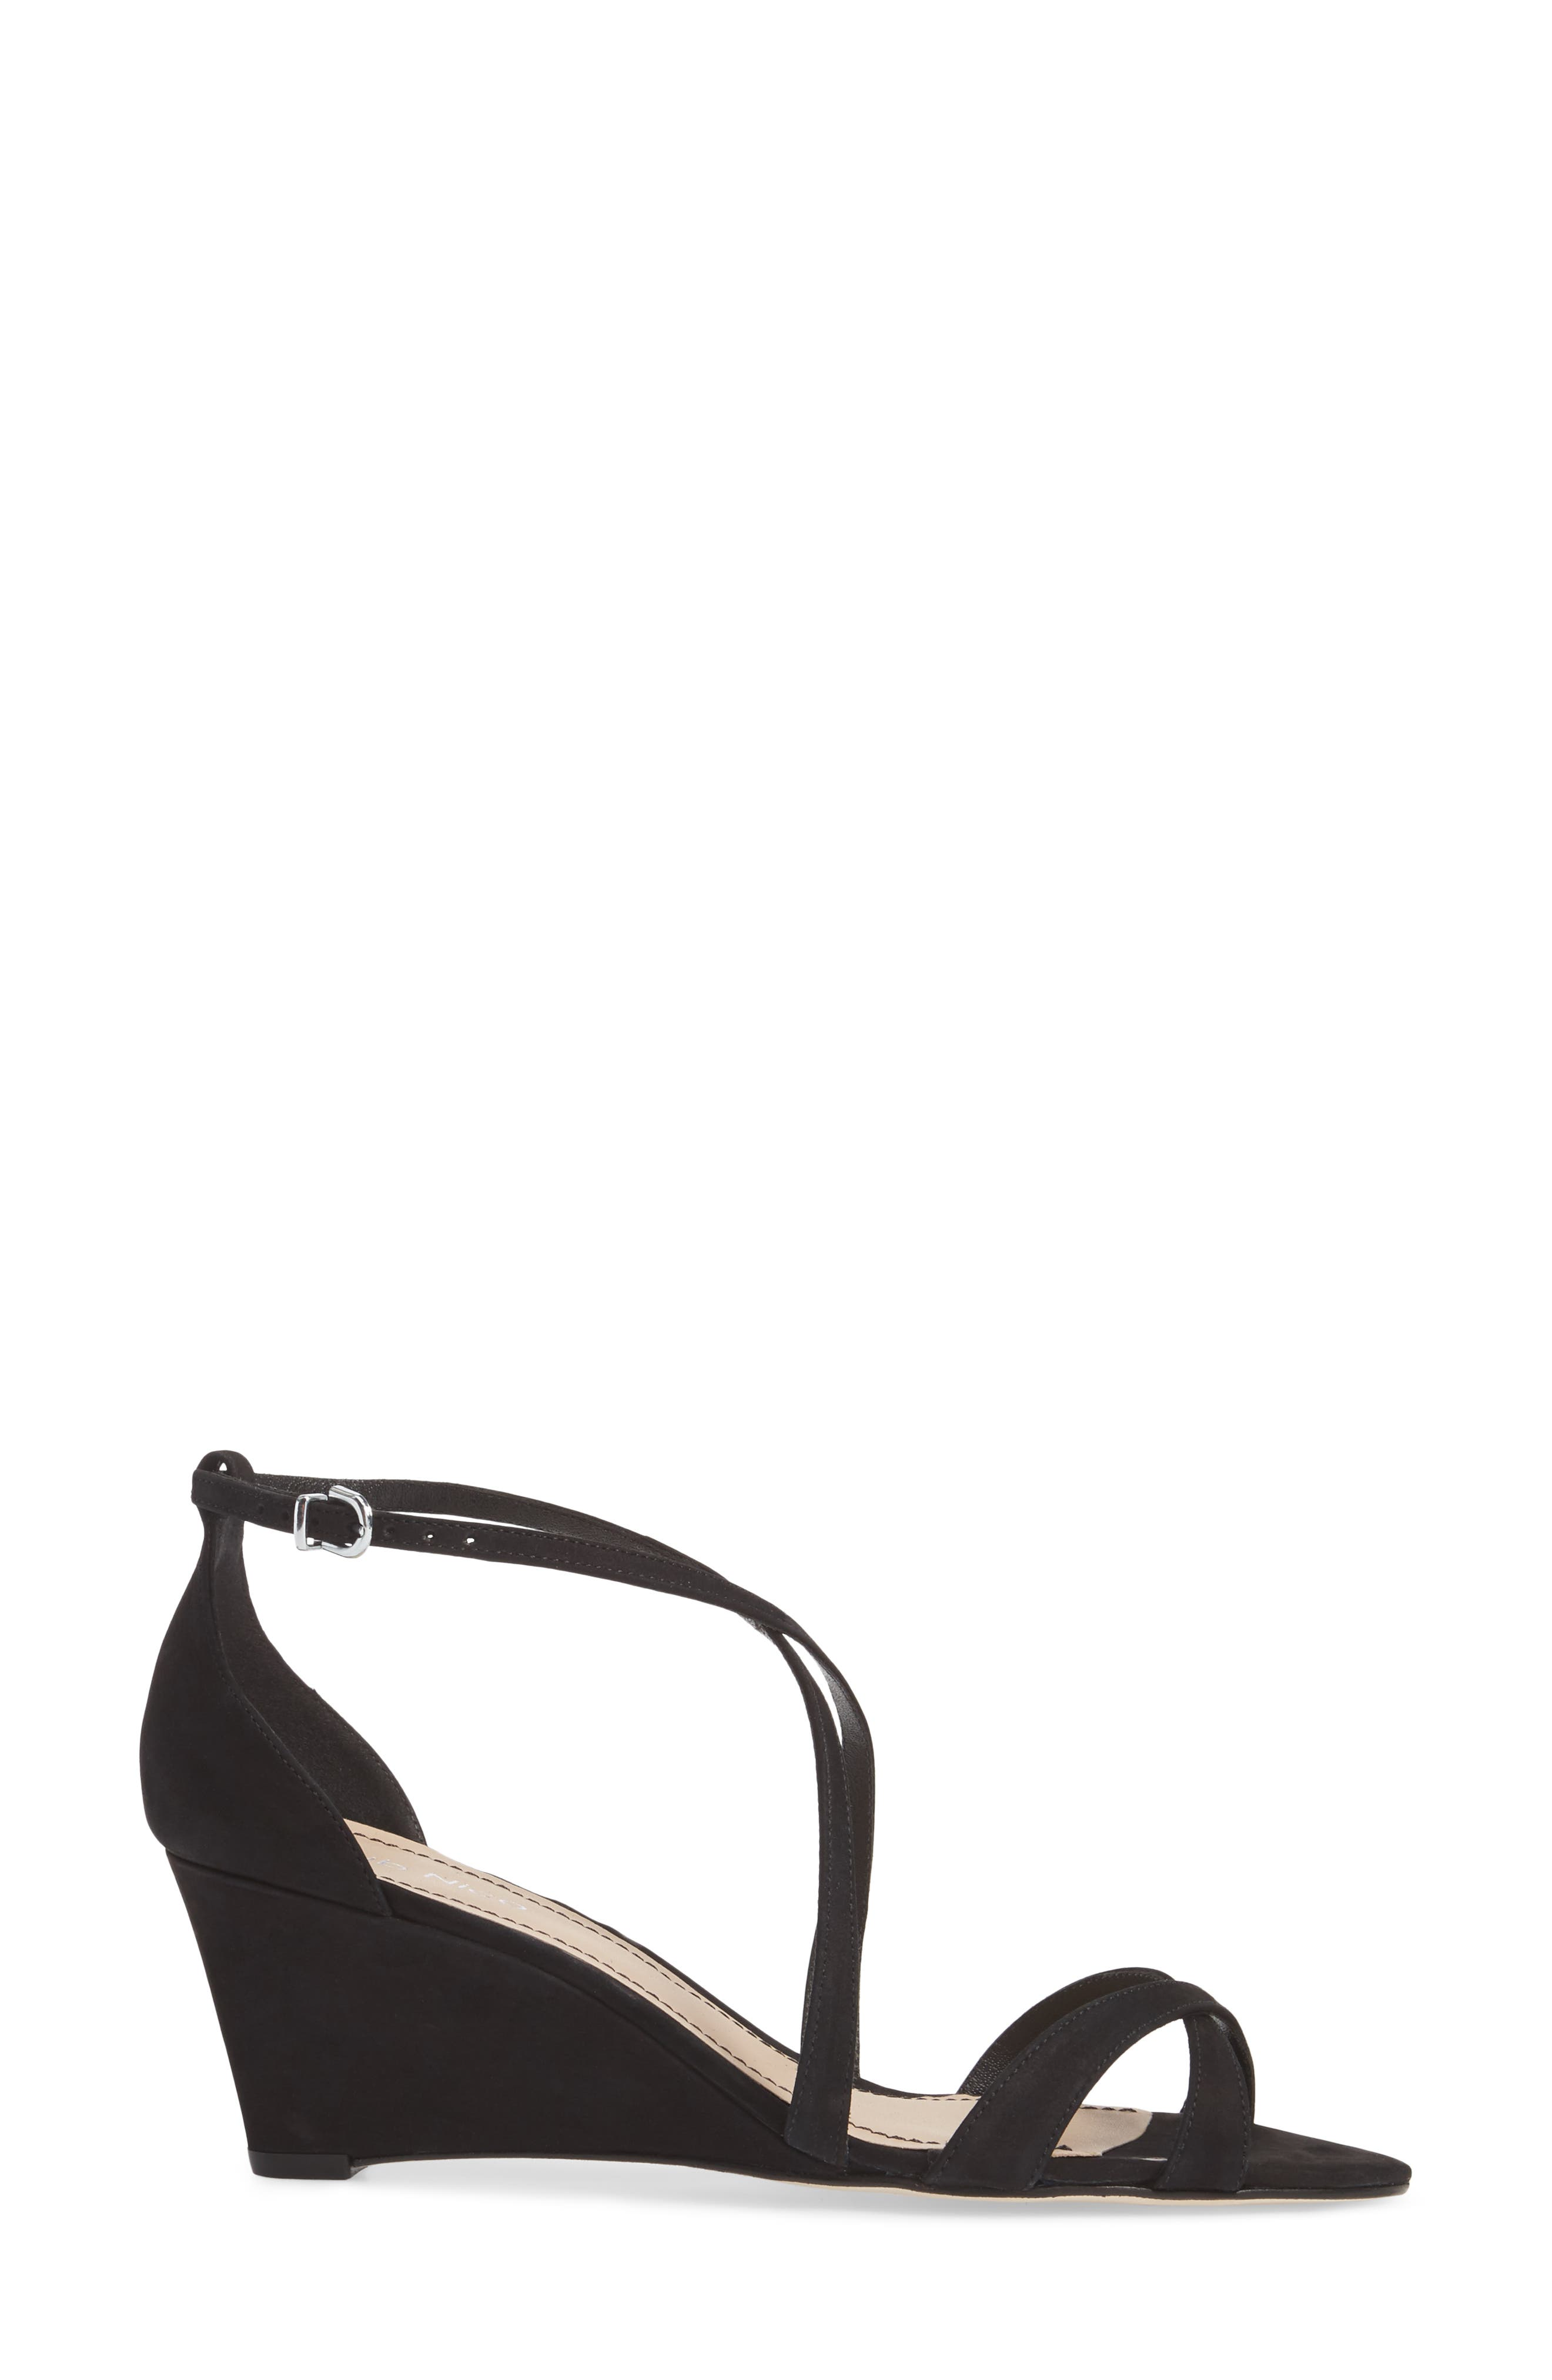 KLUB NICO,                             Kaissa Sandal,                             Alternate thumbnail 3, color,                             BLACK NUBUCK LEATHER